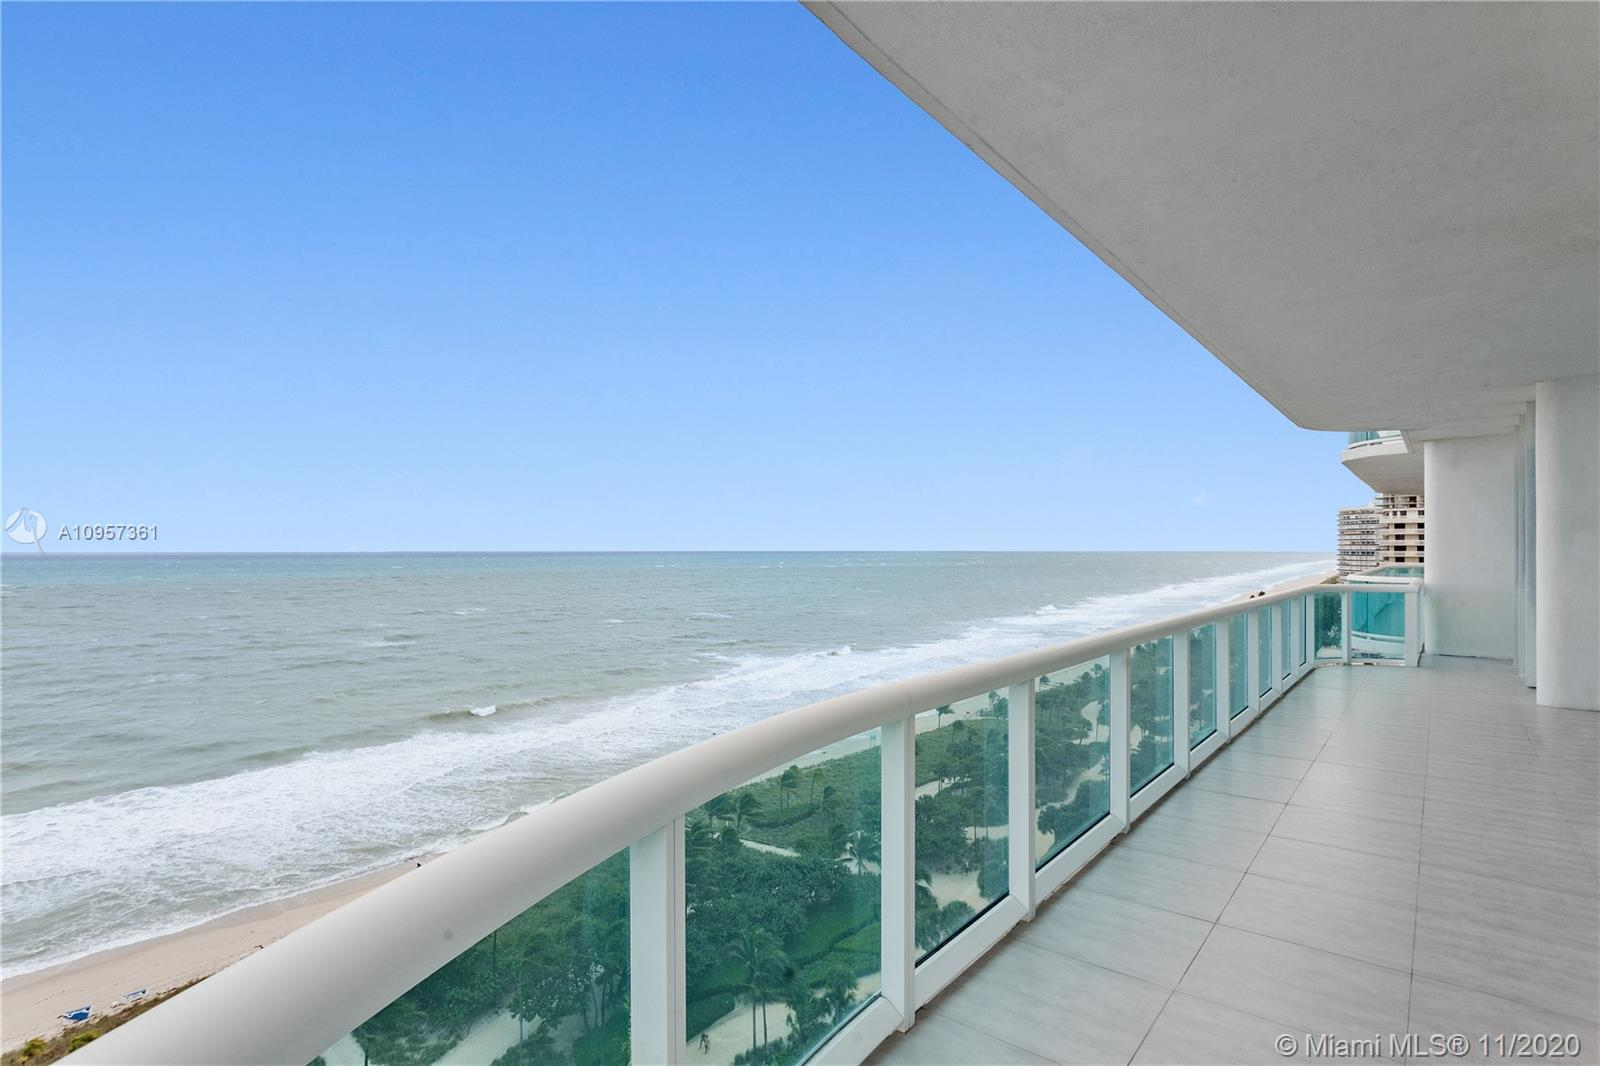 Spectacular oceanfront corner unit! Modern and totally redone w/ultimate top of the line finishes. Furnished and decorated by Steven G. This unit boasts direct ocean views form Wrap around balcony & includes a housekeeper's qrtrs & bath, white glass tile floors, italian gourmet kitchen w/Miele Appliances, His & Her Master Bths, Custom sound system & lighting, Electric Hurricane shutters. Ready to move in. Amenities include a heated pool with cabanas and beach access, tennis courts, playground and playroom, valet and concierge services, full spa, 24-hour security, restaurant.The building is just one block from the famous Bal Harbour shops and conveniently close to numerous other stores, fine dining, cultural activities, the Indian Creek Golf Course, marinas and international airports.